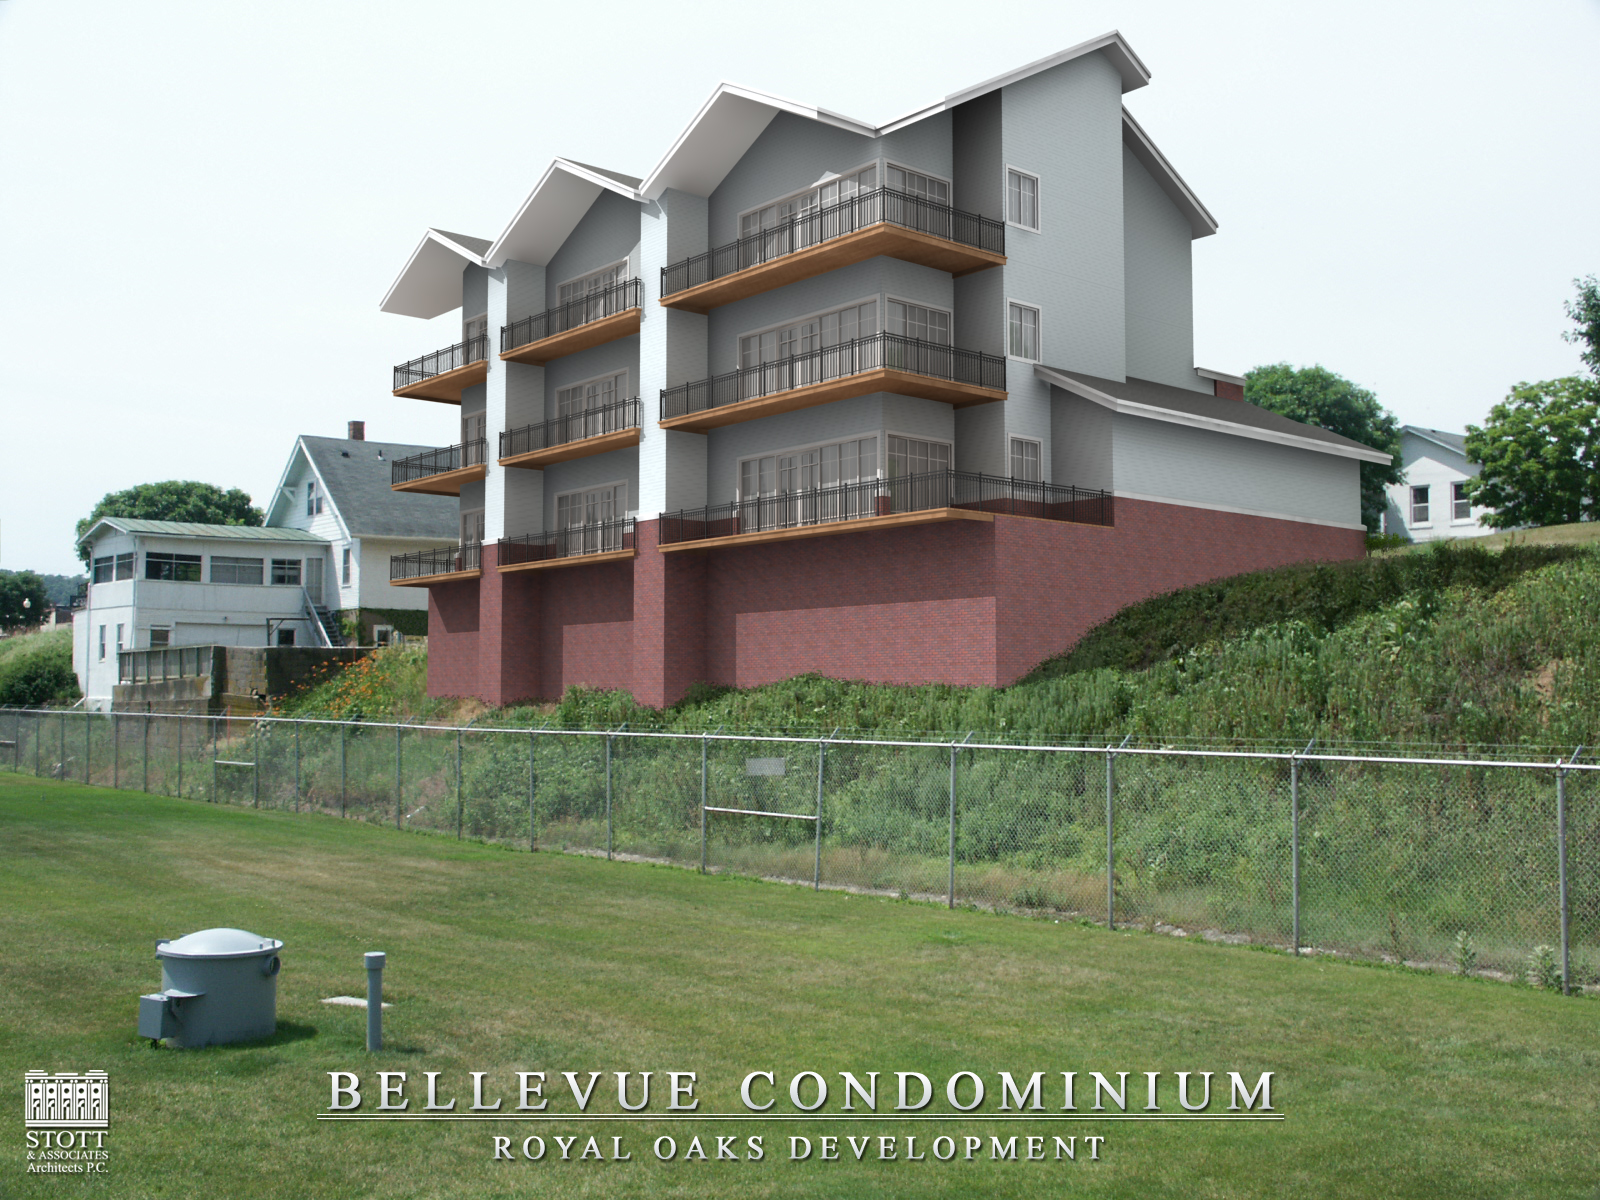 Bellevue_Back Composite.jpg